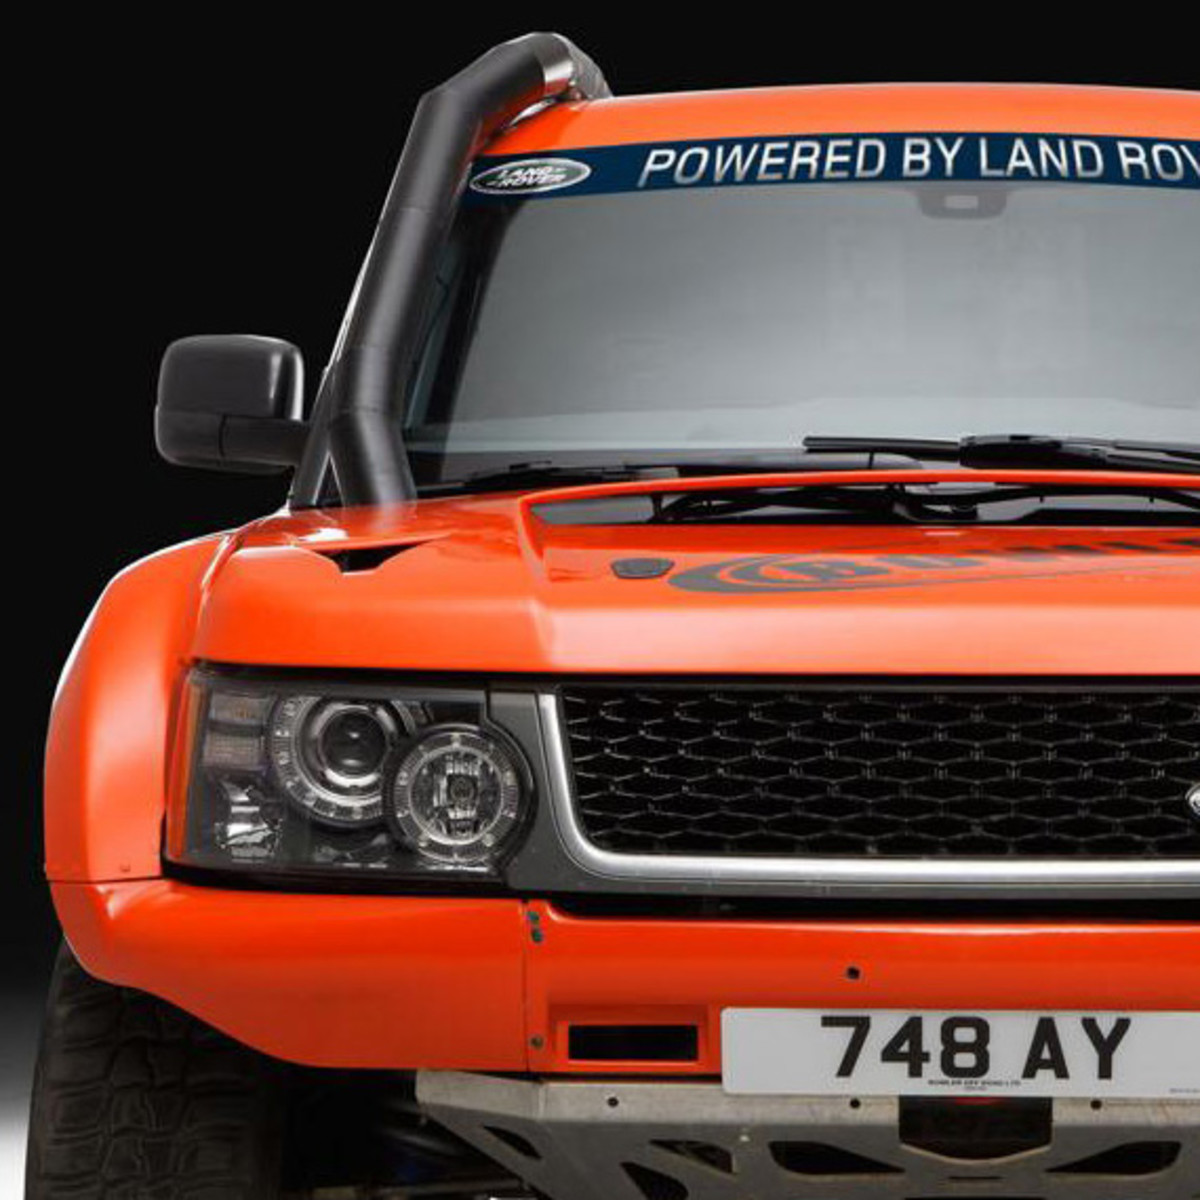 bowler-land-rover-exr-off-road-rally-car-09